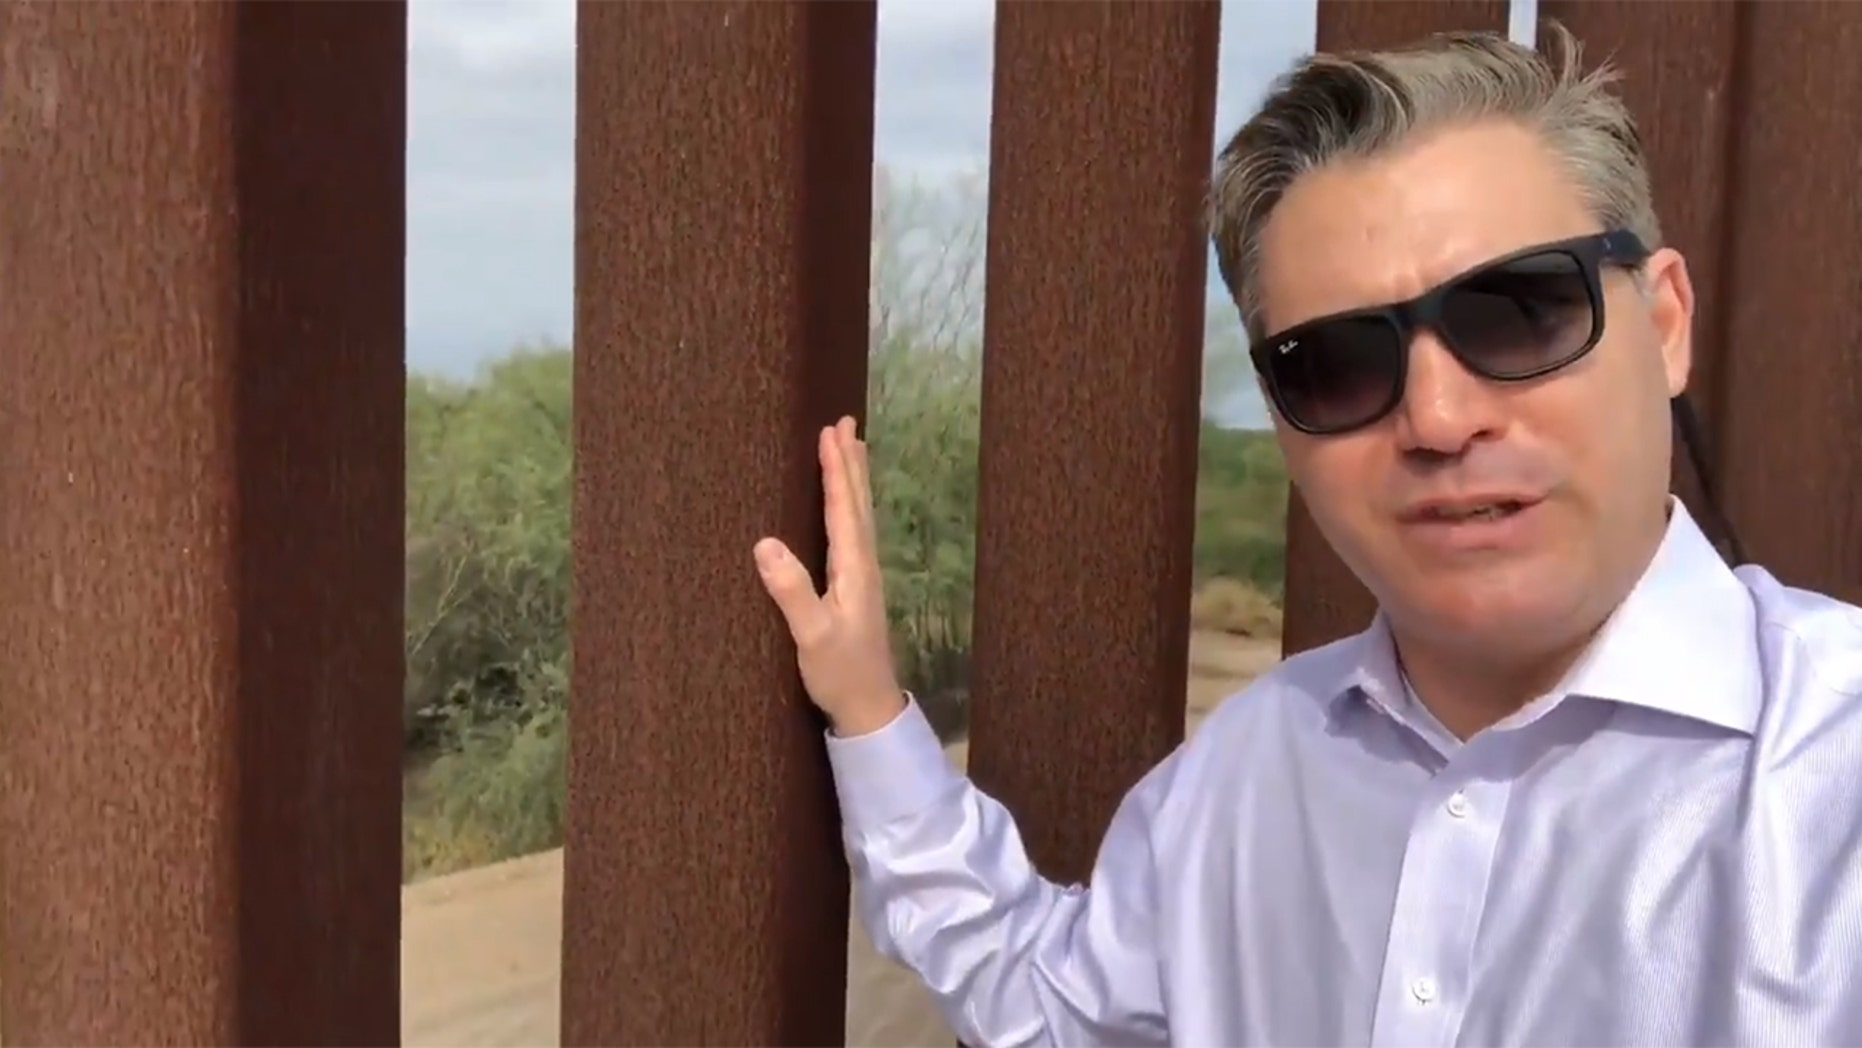 CNN reporter Jim Acosta was mocked for accidently proving that border walls work in a video he uploaded to Twitter.